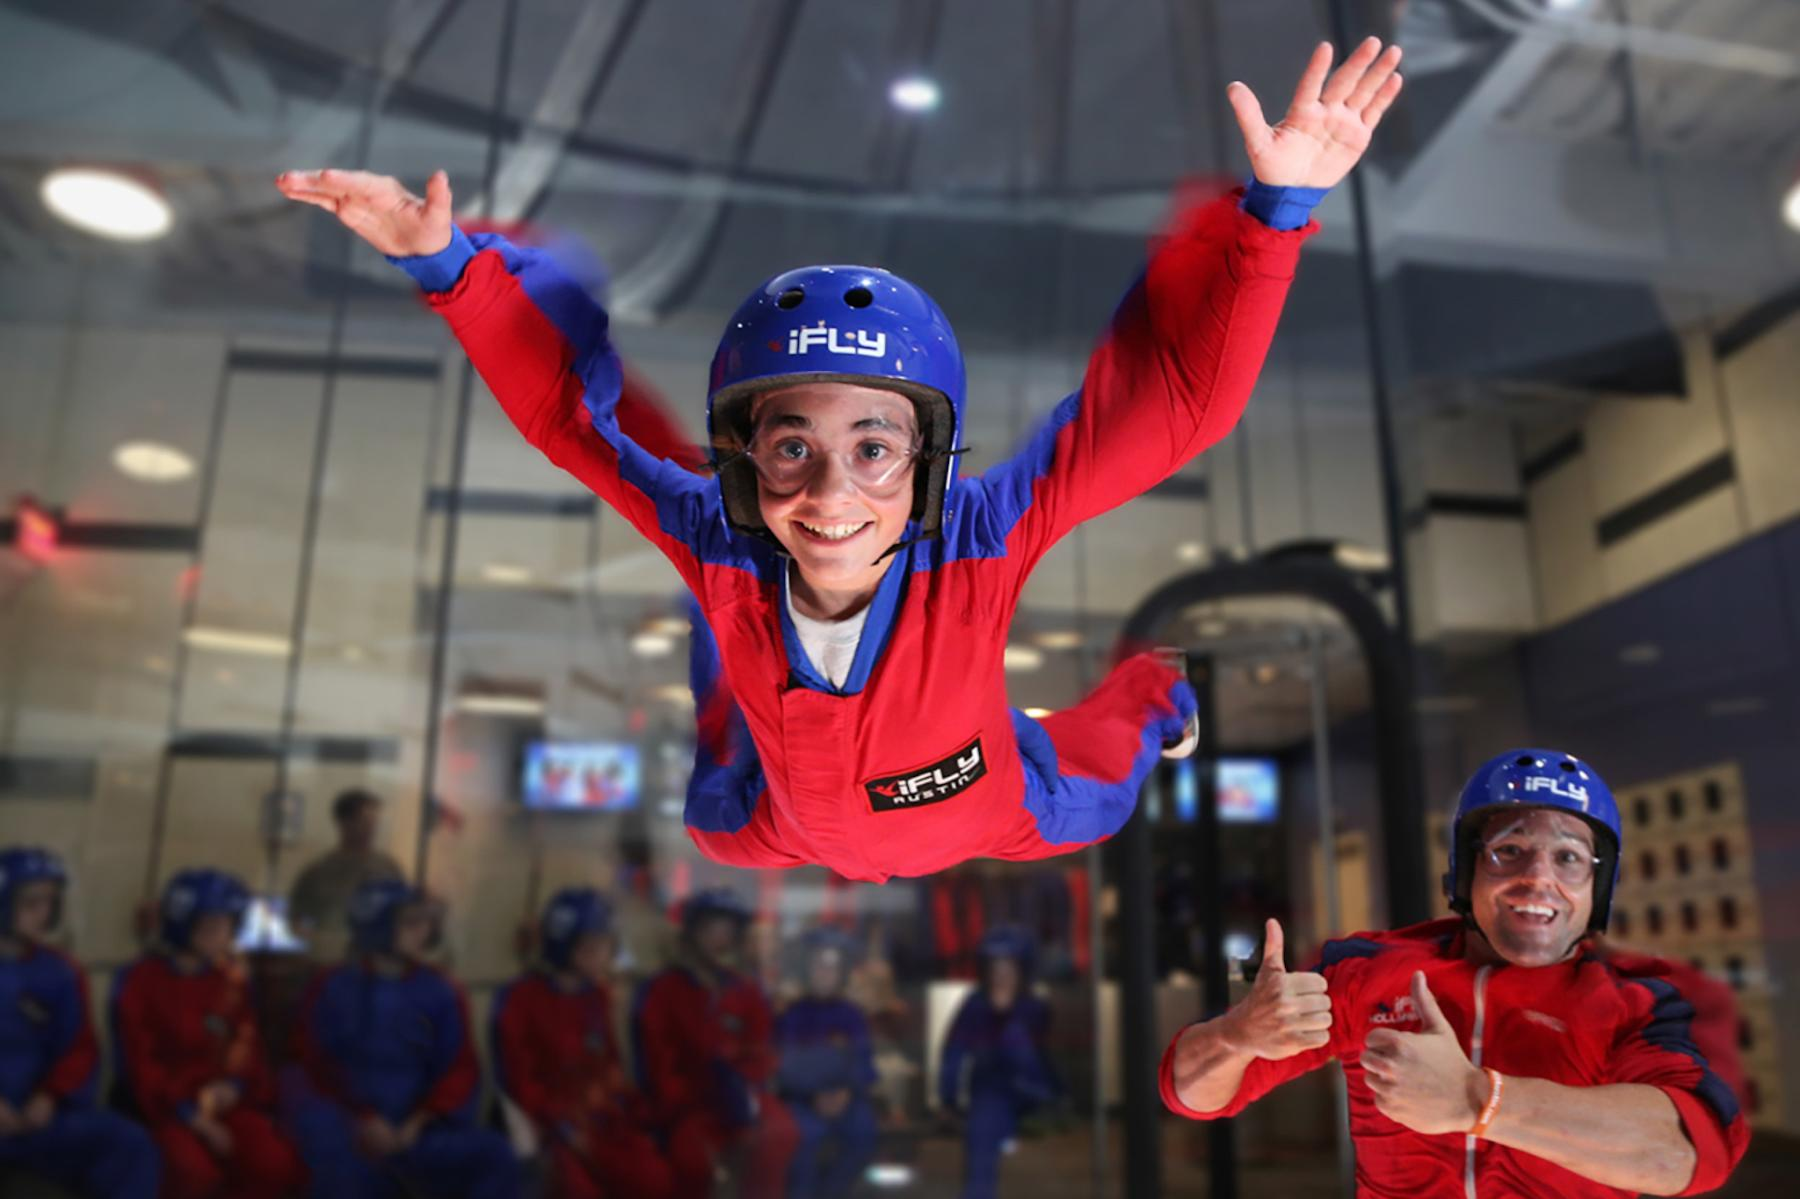 Kids fun at iFly indoor skydiving